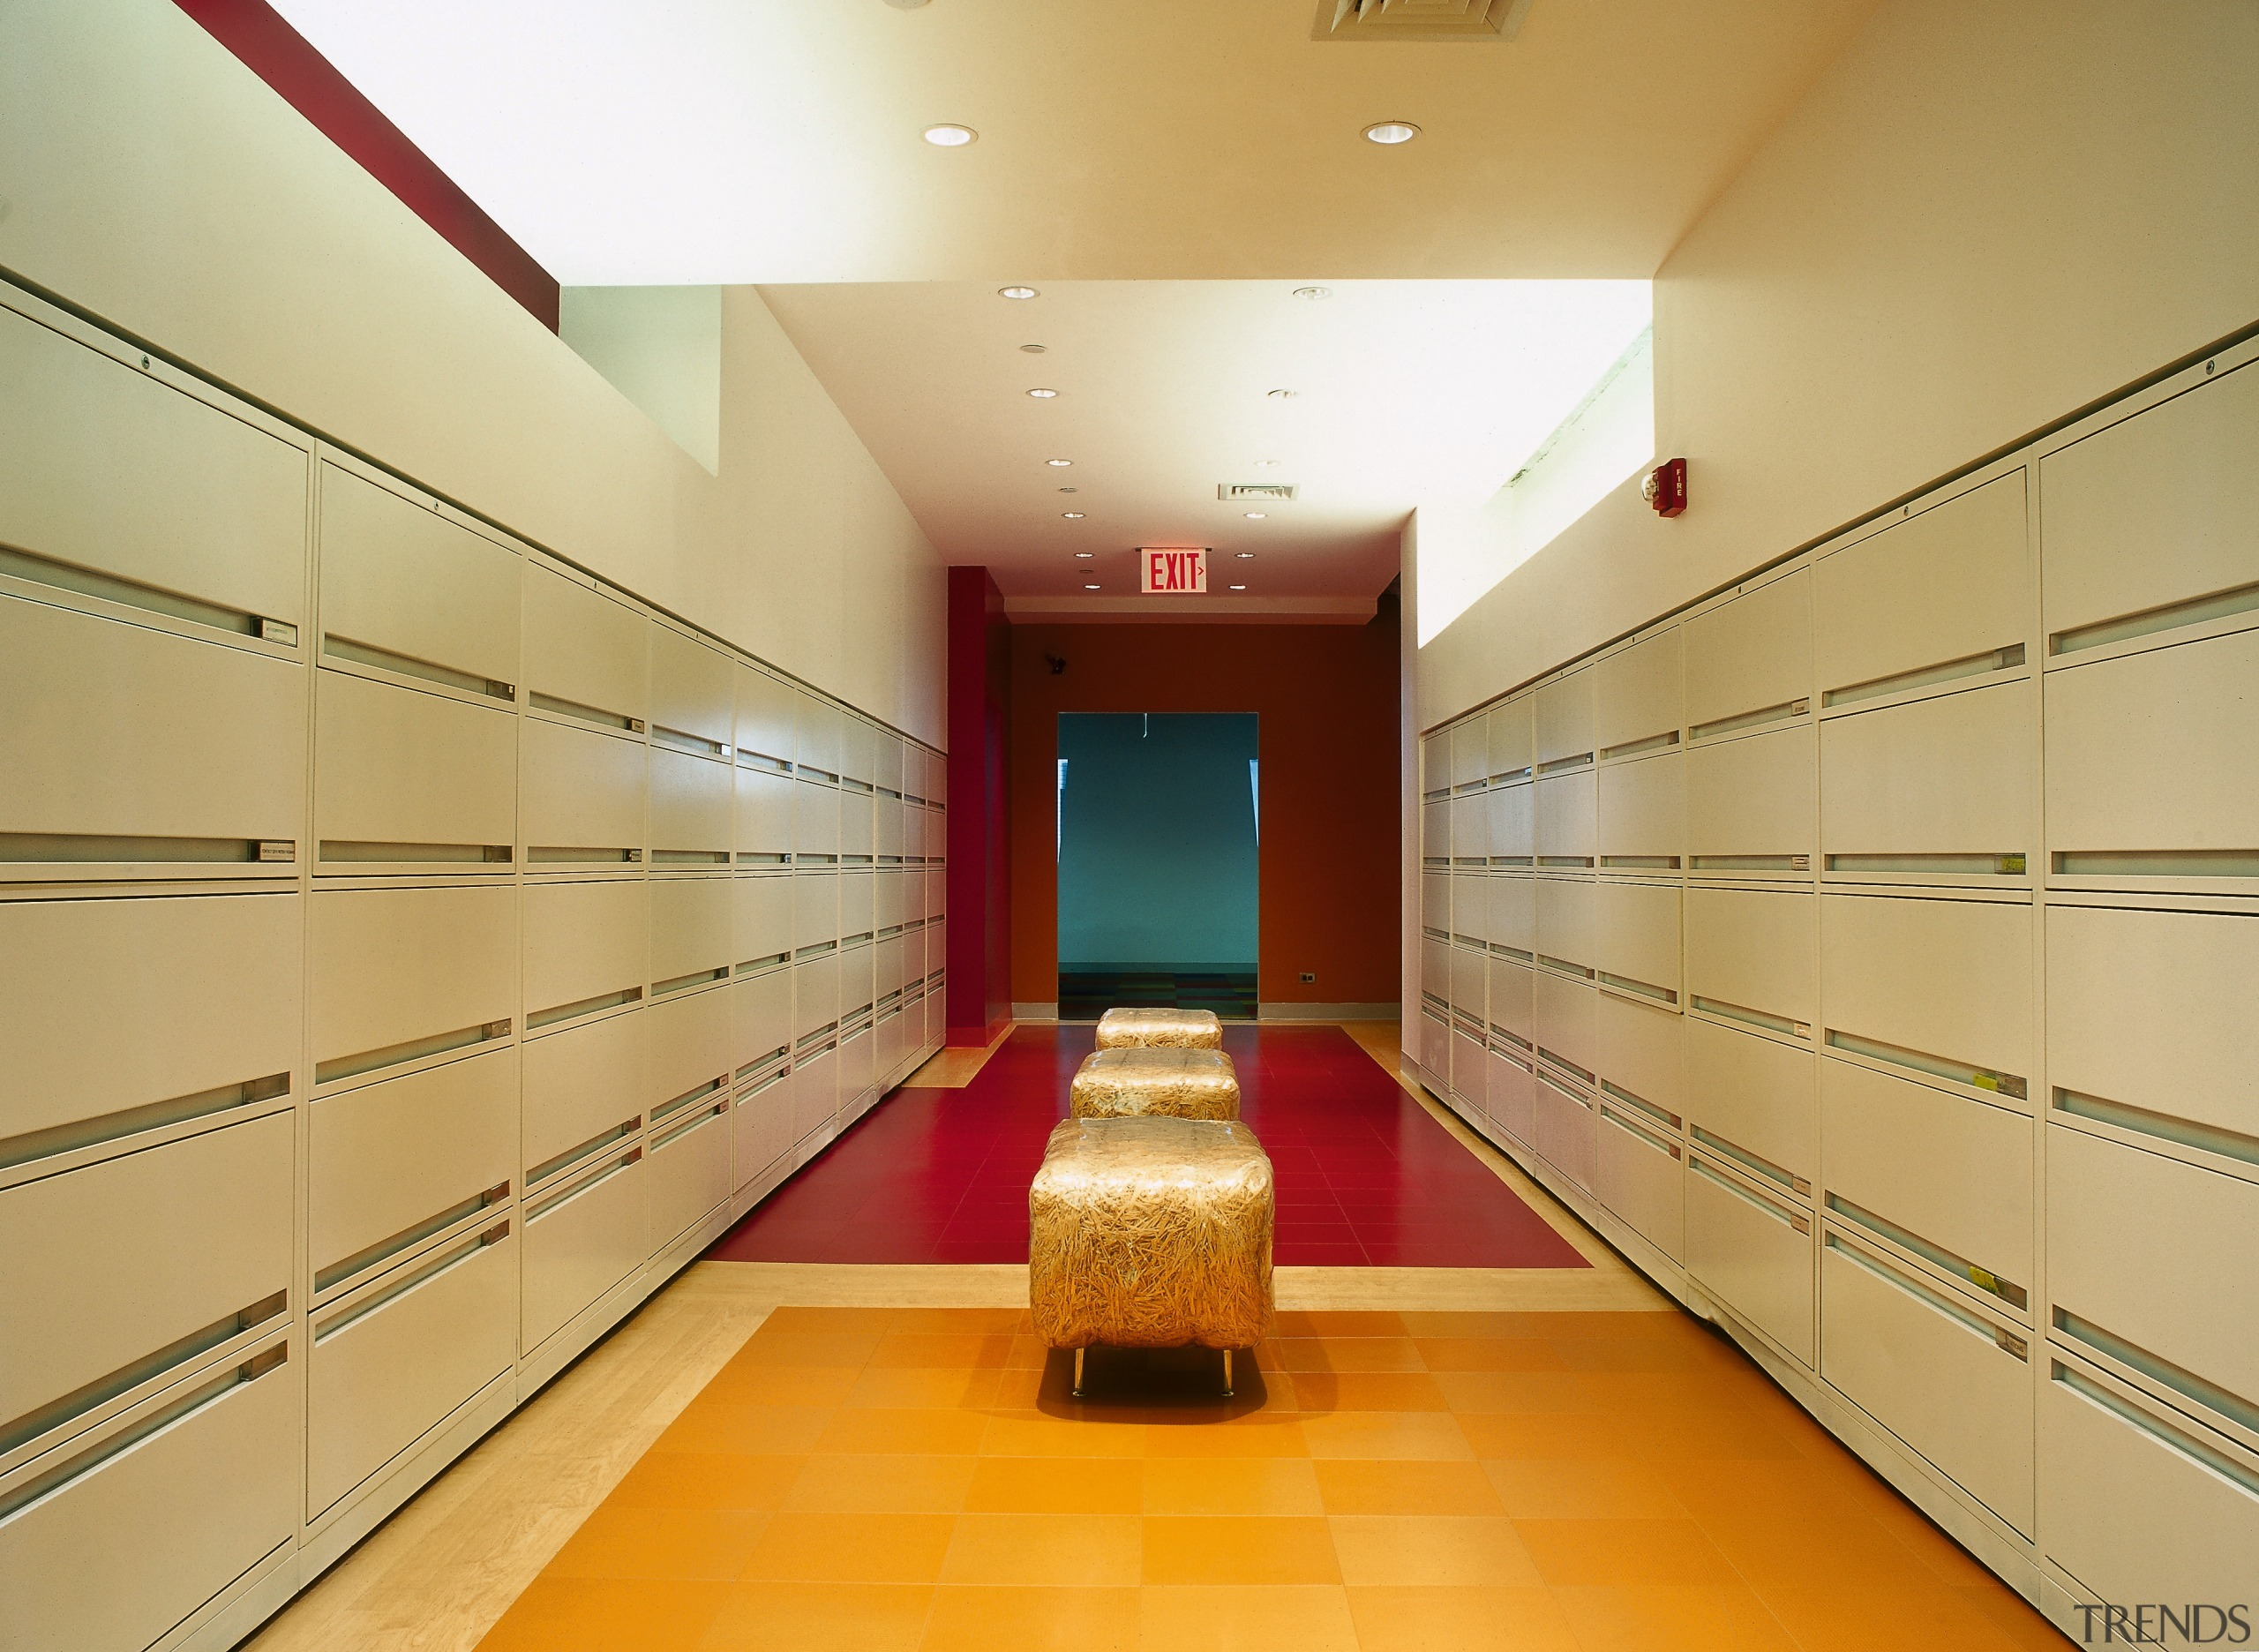 A view of the filing room, many filing architecture, ceiling, floor, interior design, lobby, room, orange